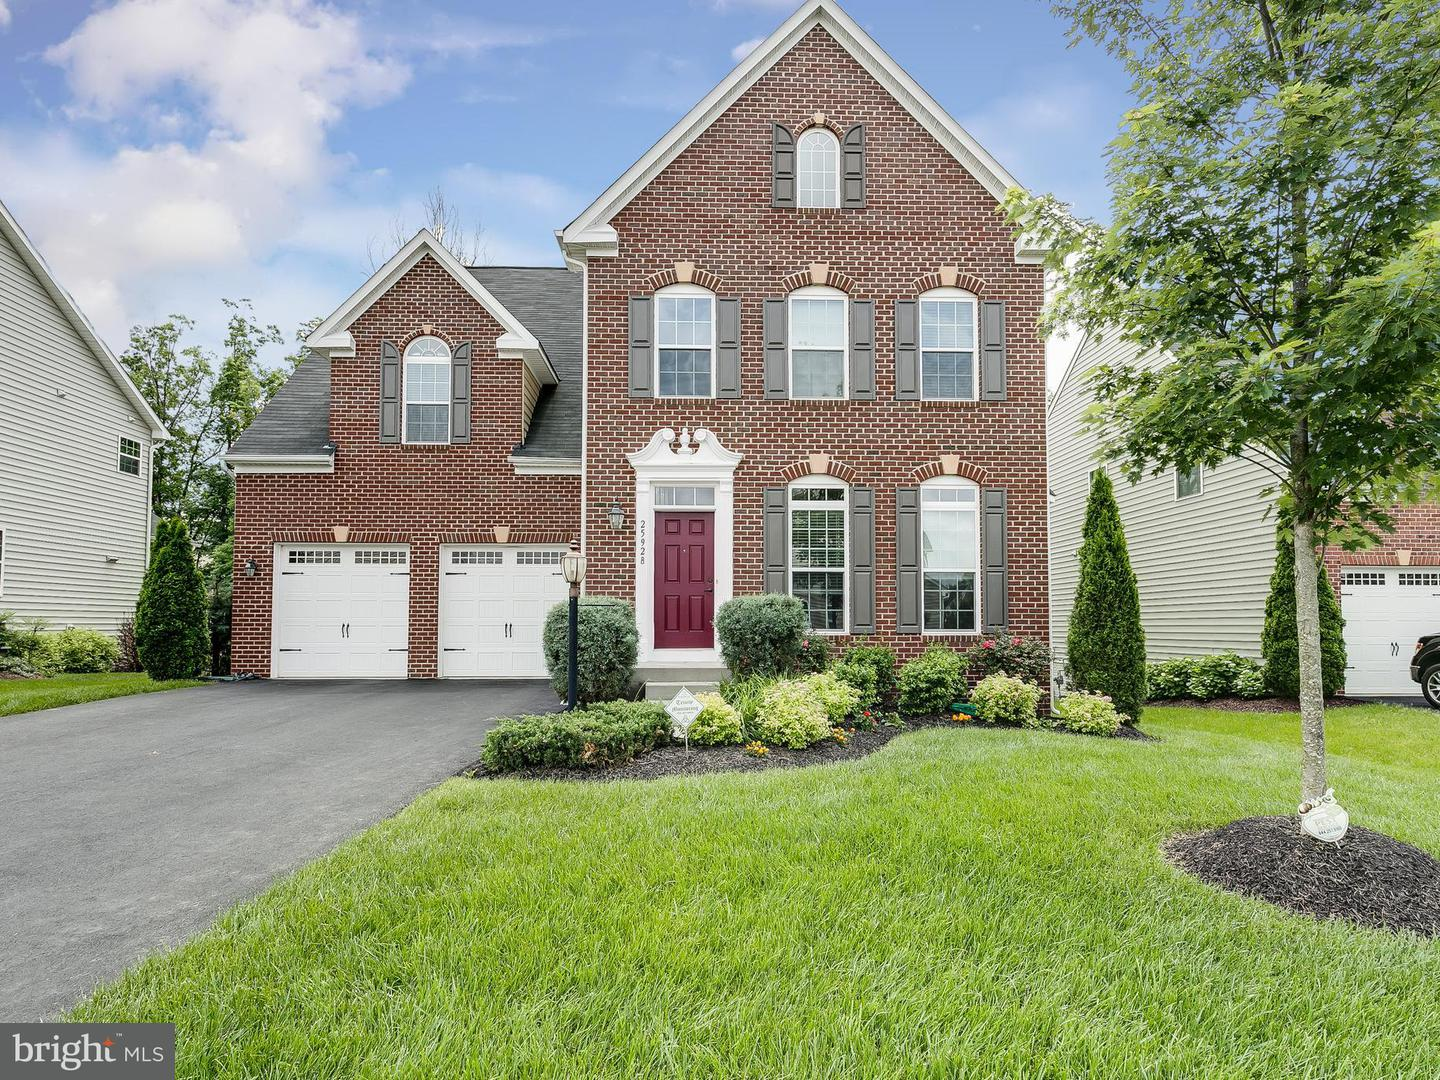 Other Residential for Rent at 25928 Sycamore Grove Pl Aldie, Virginia 20105 United States